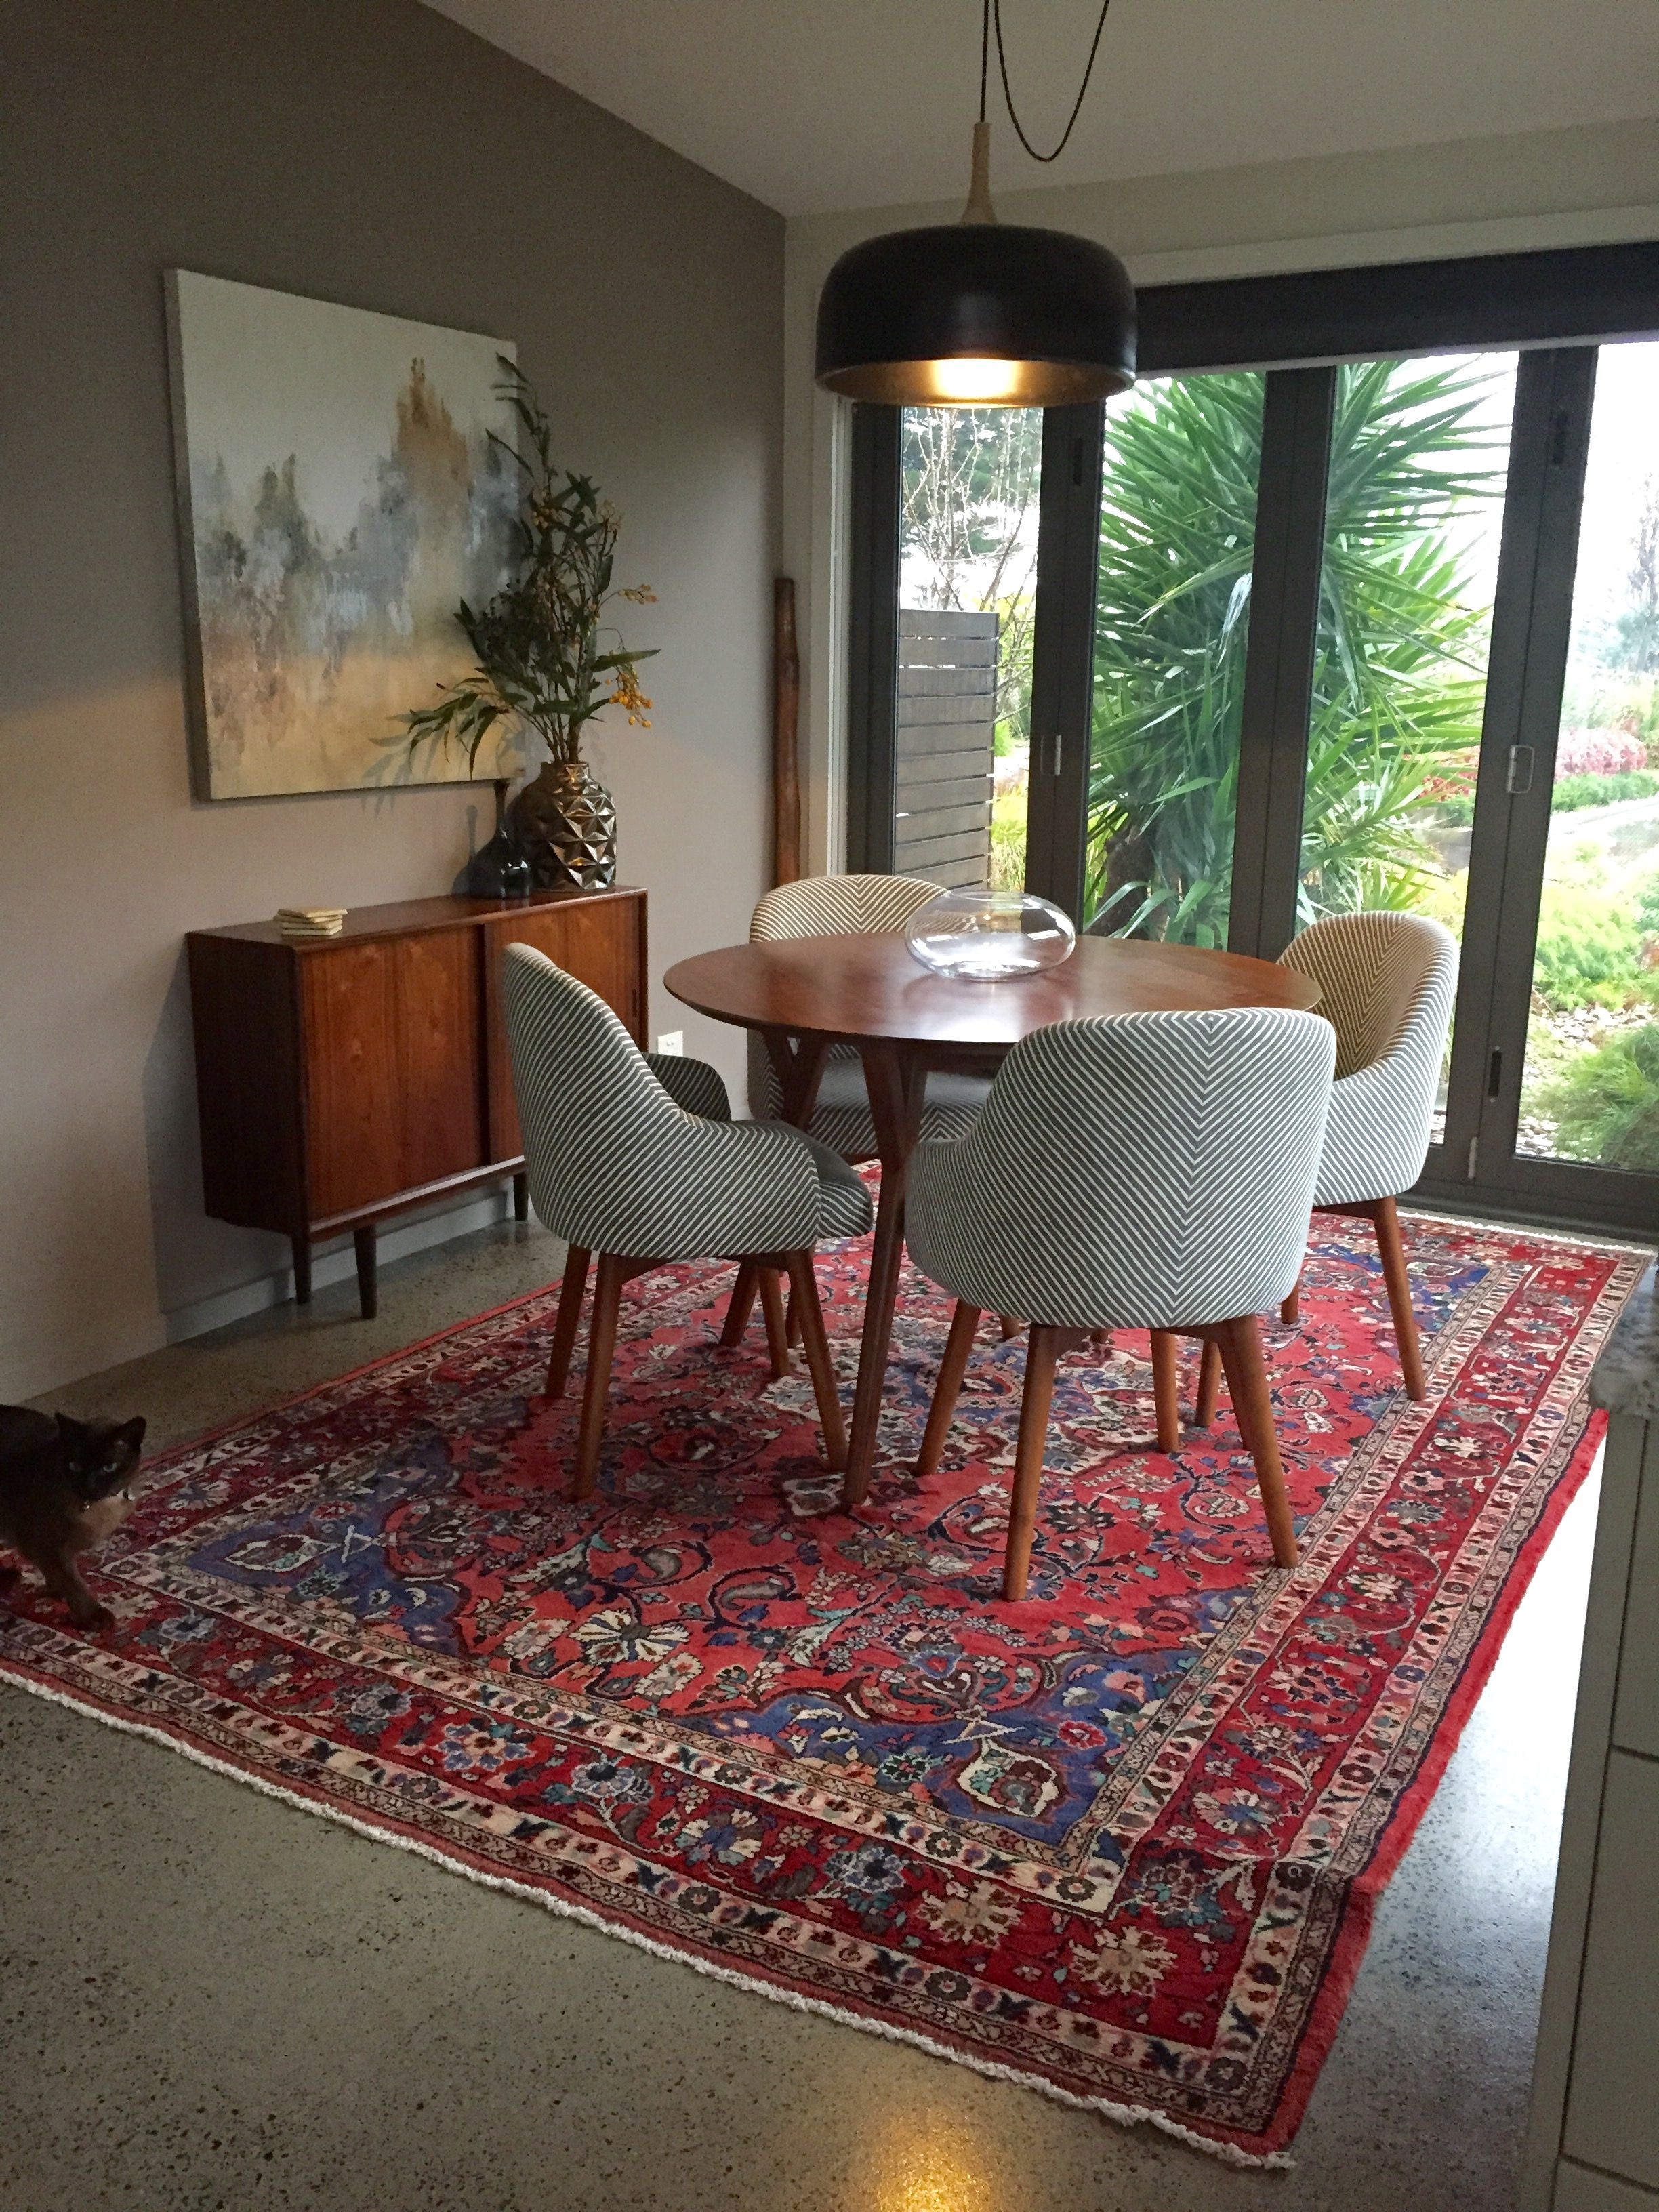 Modern Living Room Persian Rug Image Result For Modern Decorating With Persian Rugs Apartment